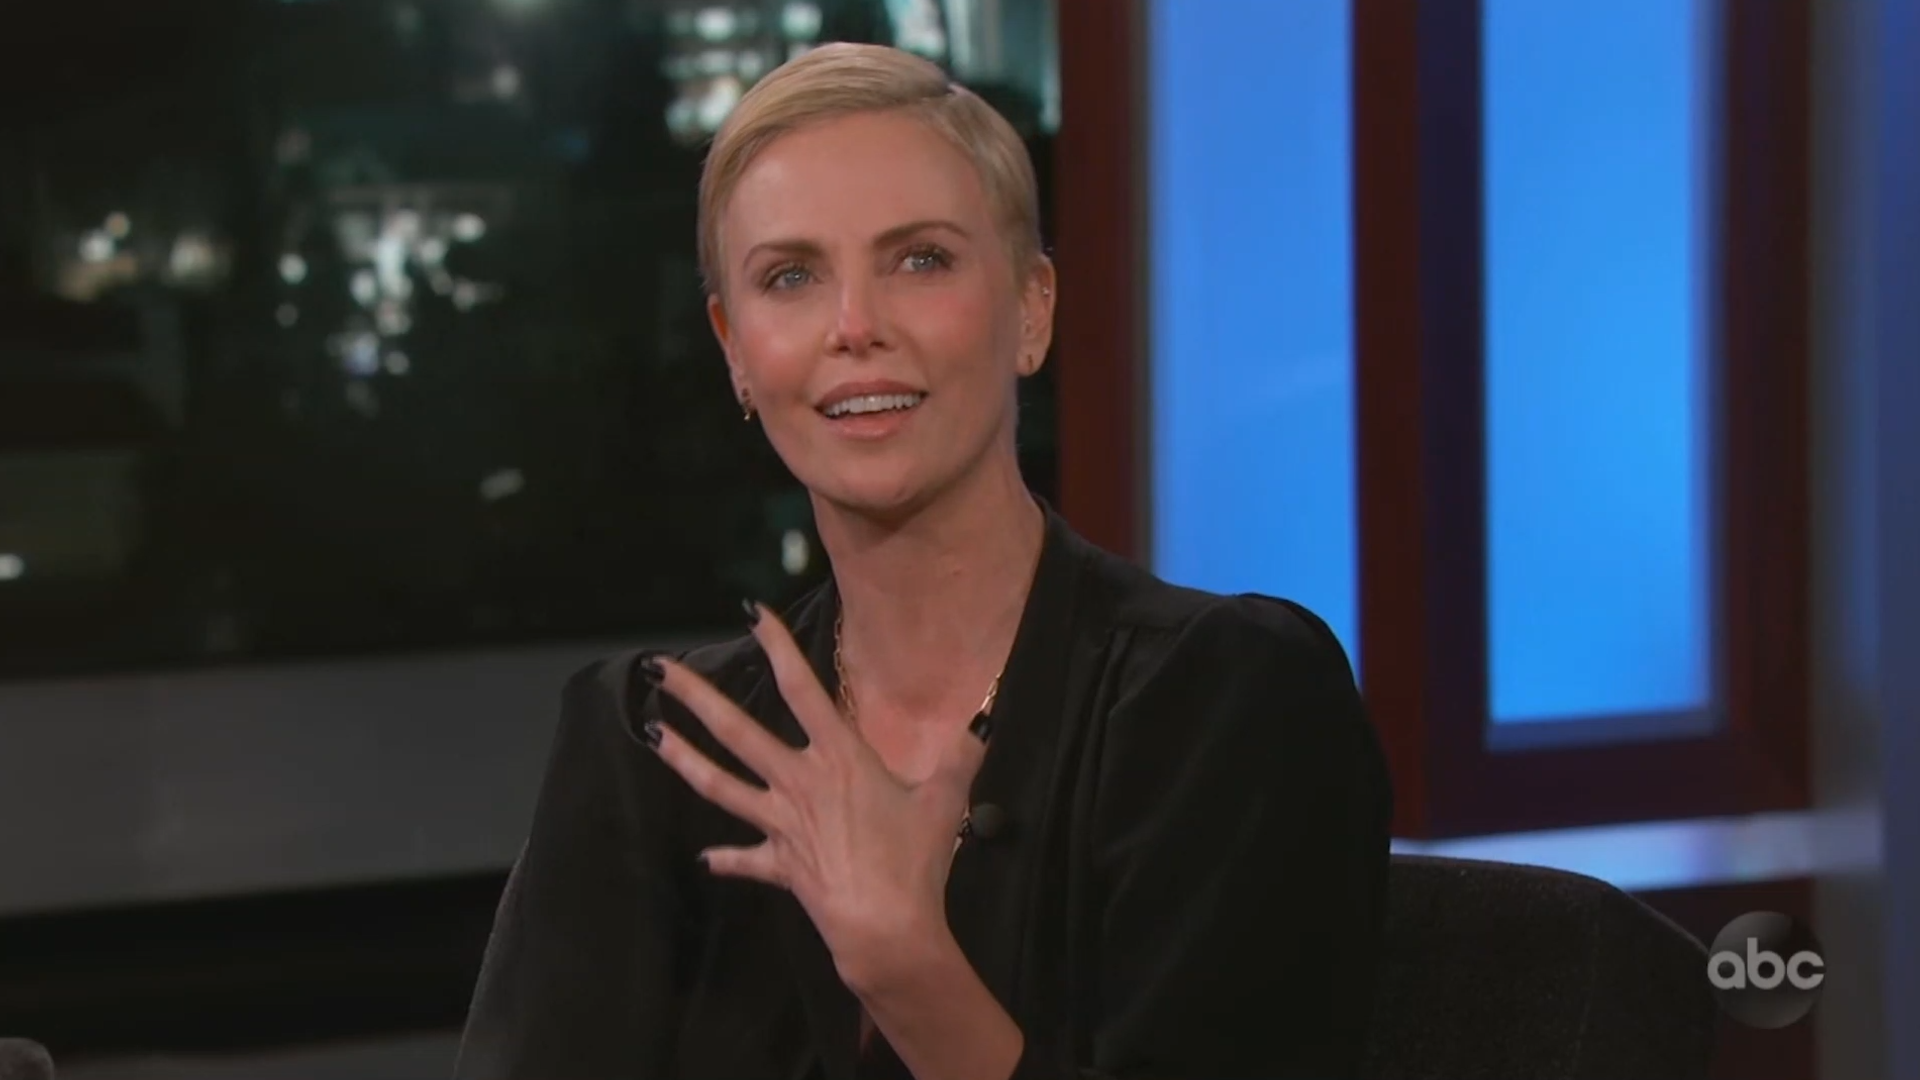 Charlize Theron has 'never forgotten' the bizarre request she once got on a date